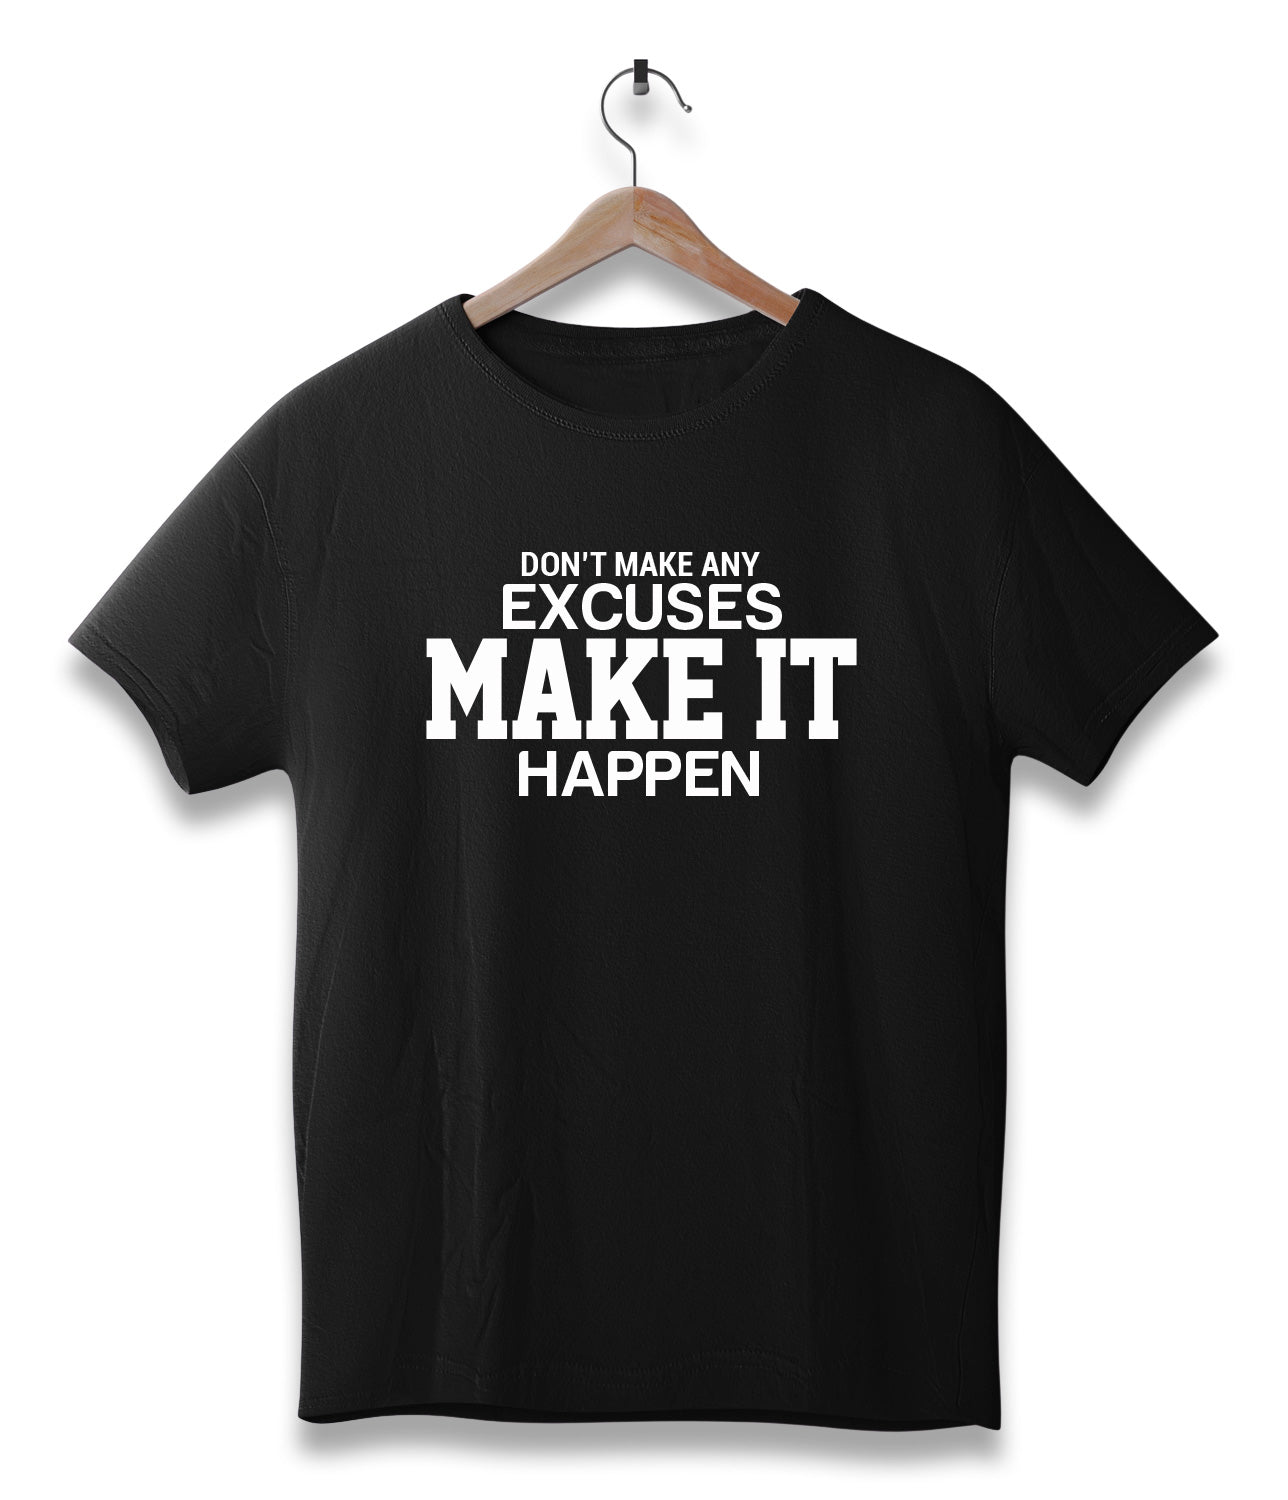 Don't make any excuses make it happen